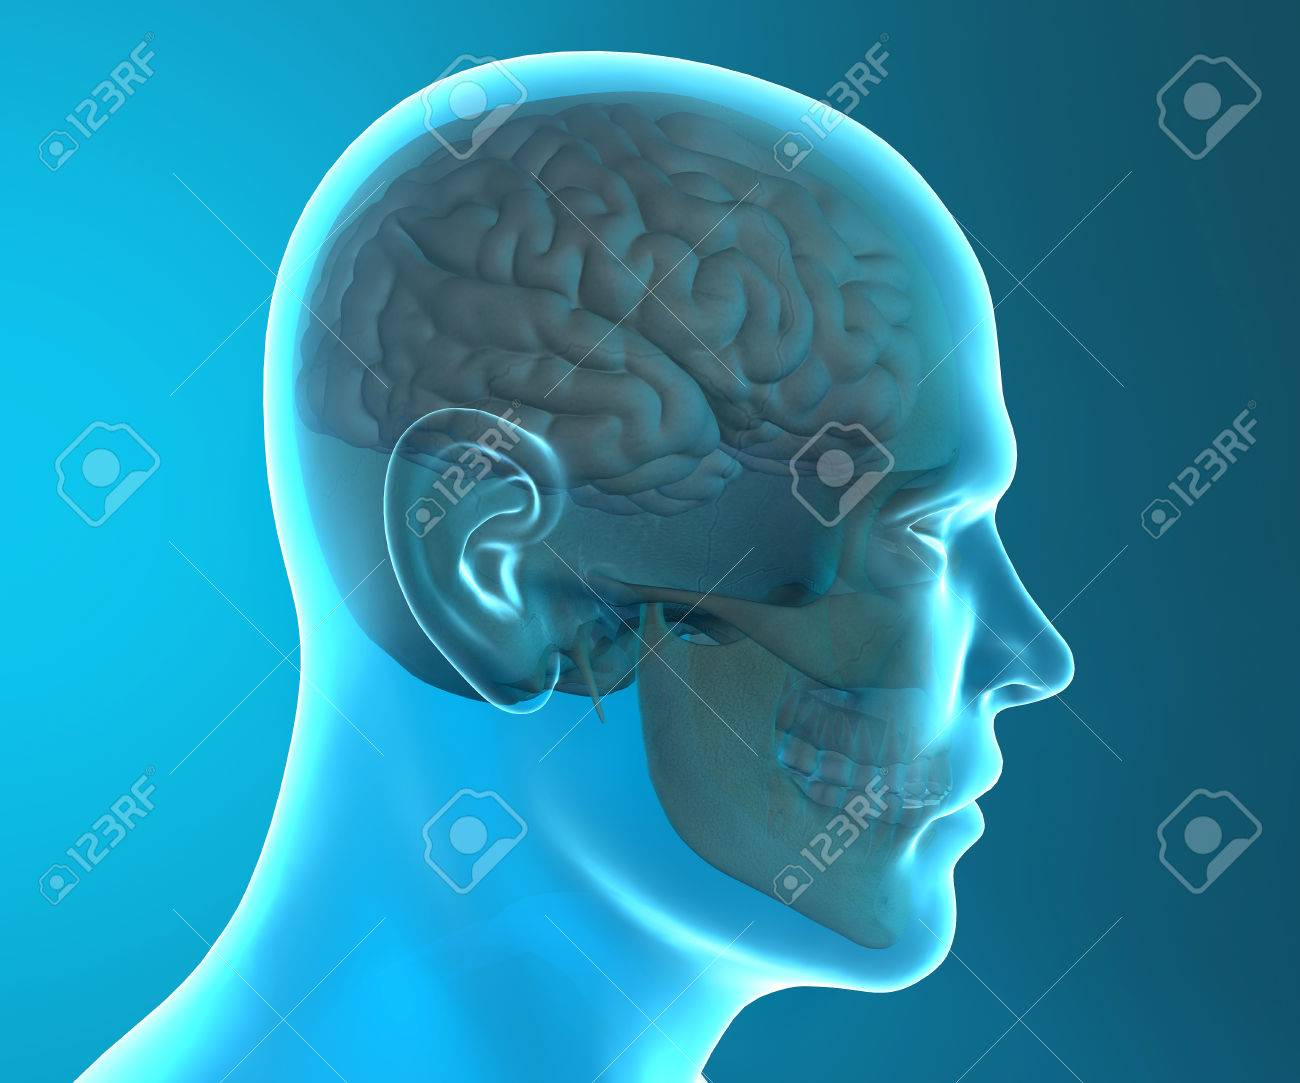 Brain Skull X-ray Head Anatomy Stock Photo, Picture And Royalty Free ...